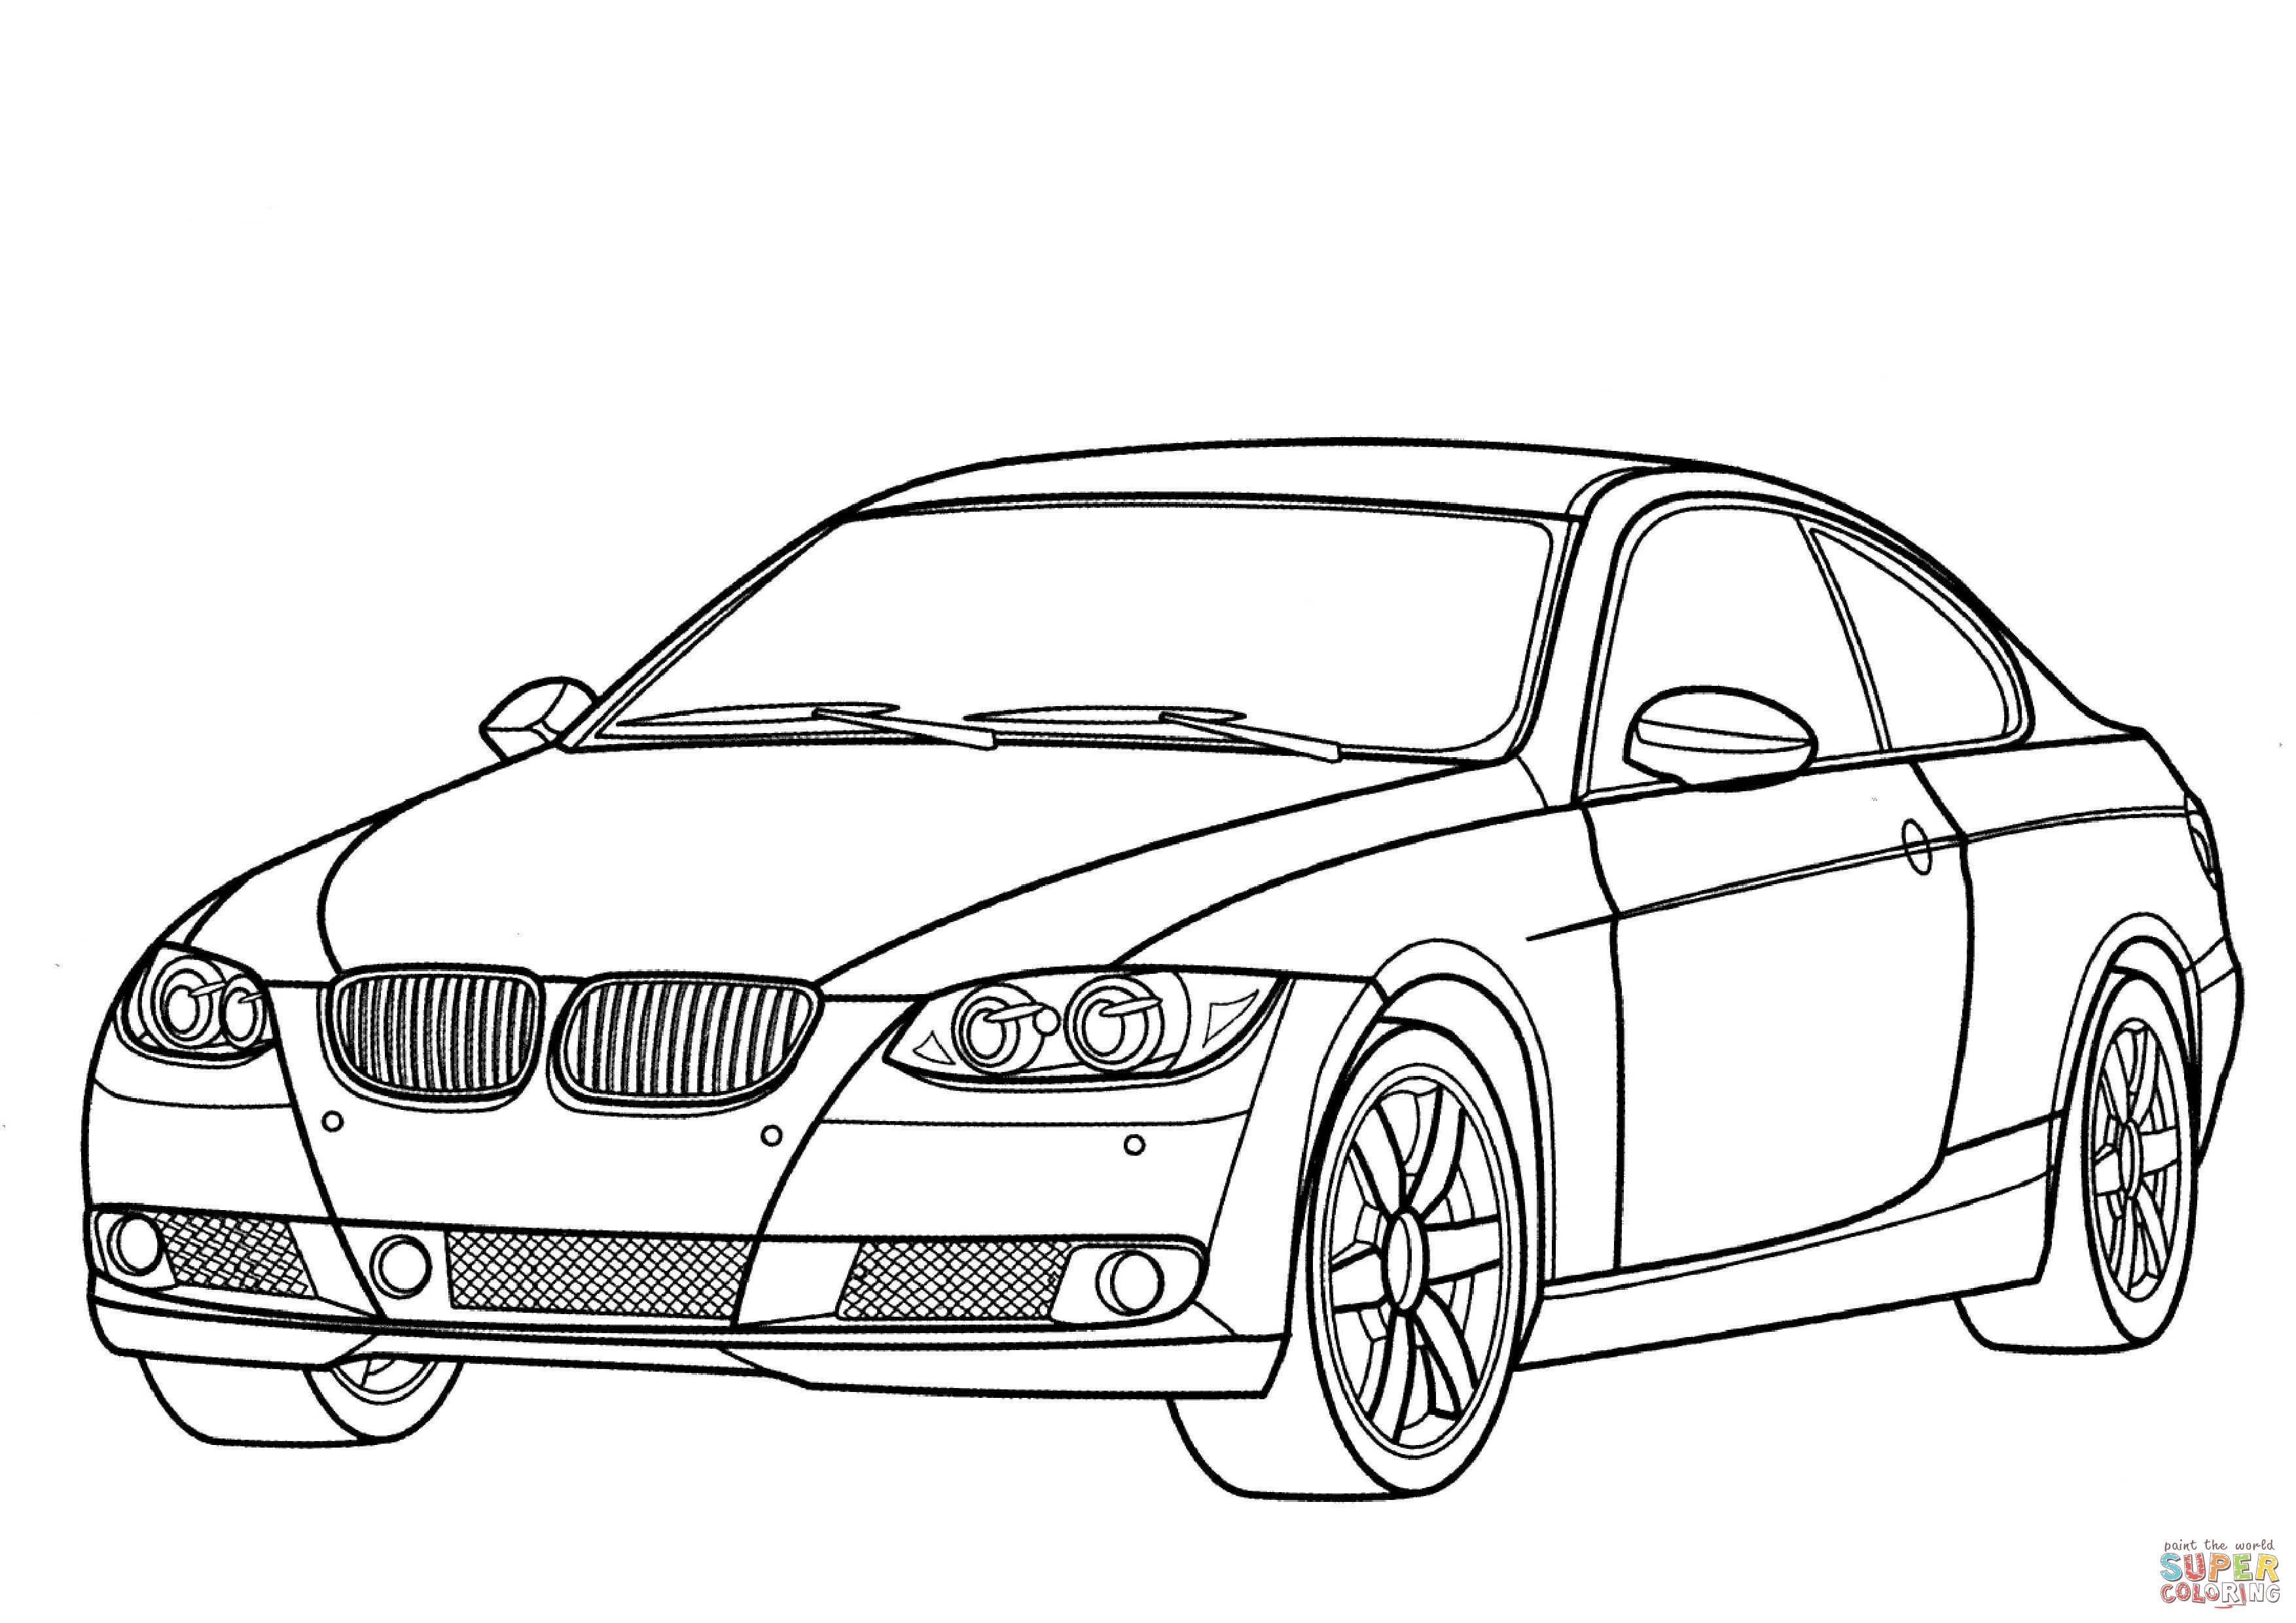 bmw 3 series ledningsdiagram free auto electrical wiring diagram Ford Mustang 3.8 Engine Diagram bmw 3 series coloring page